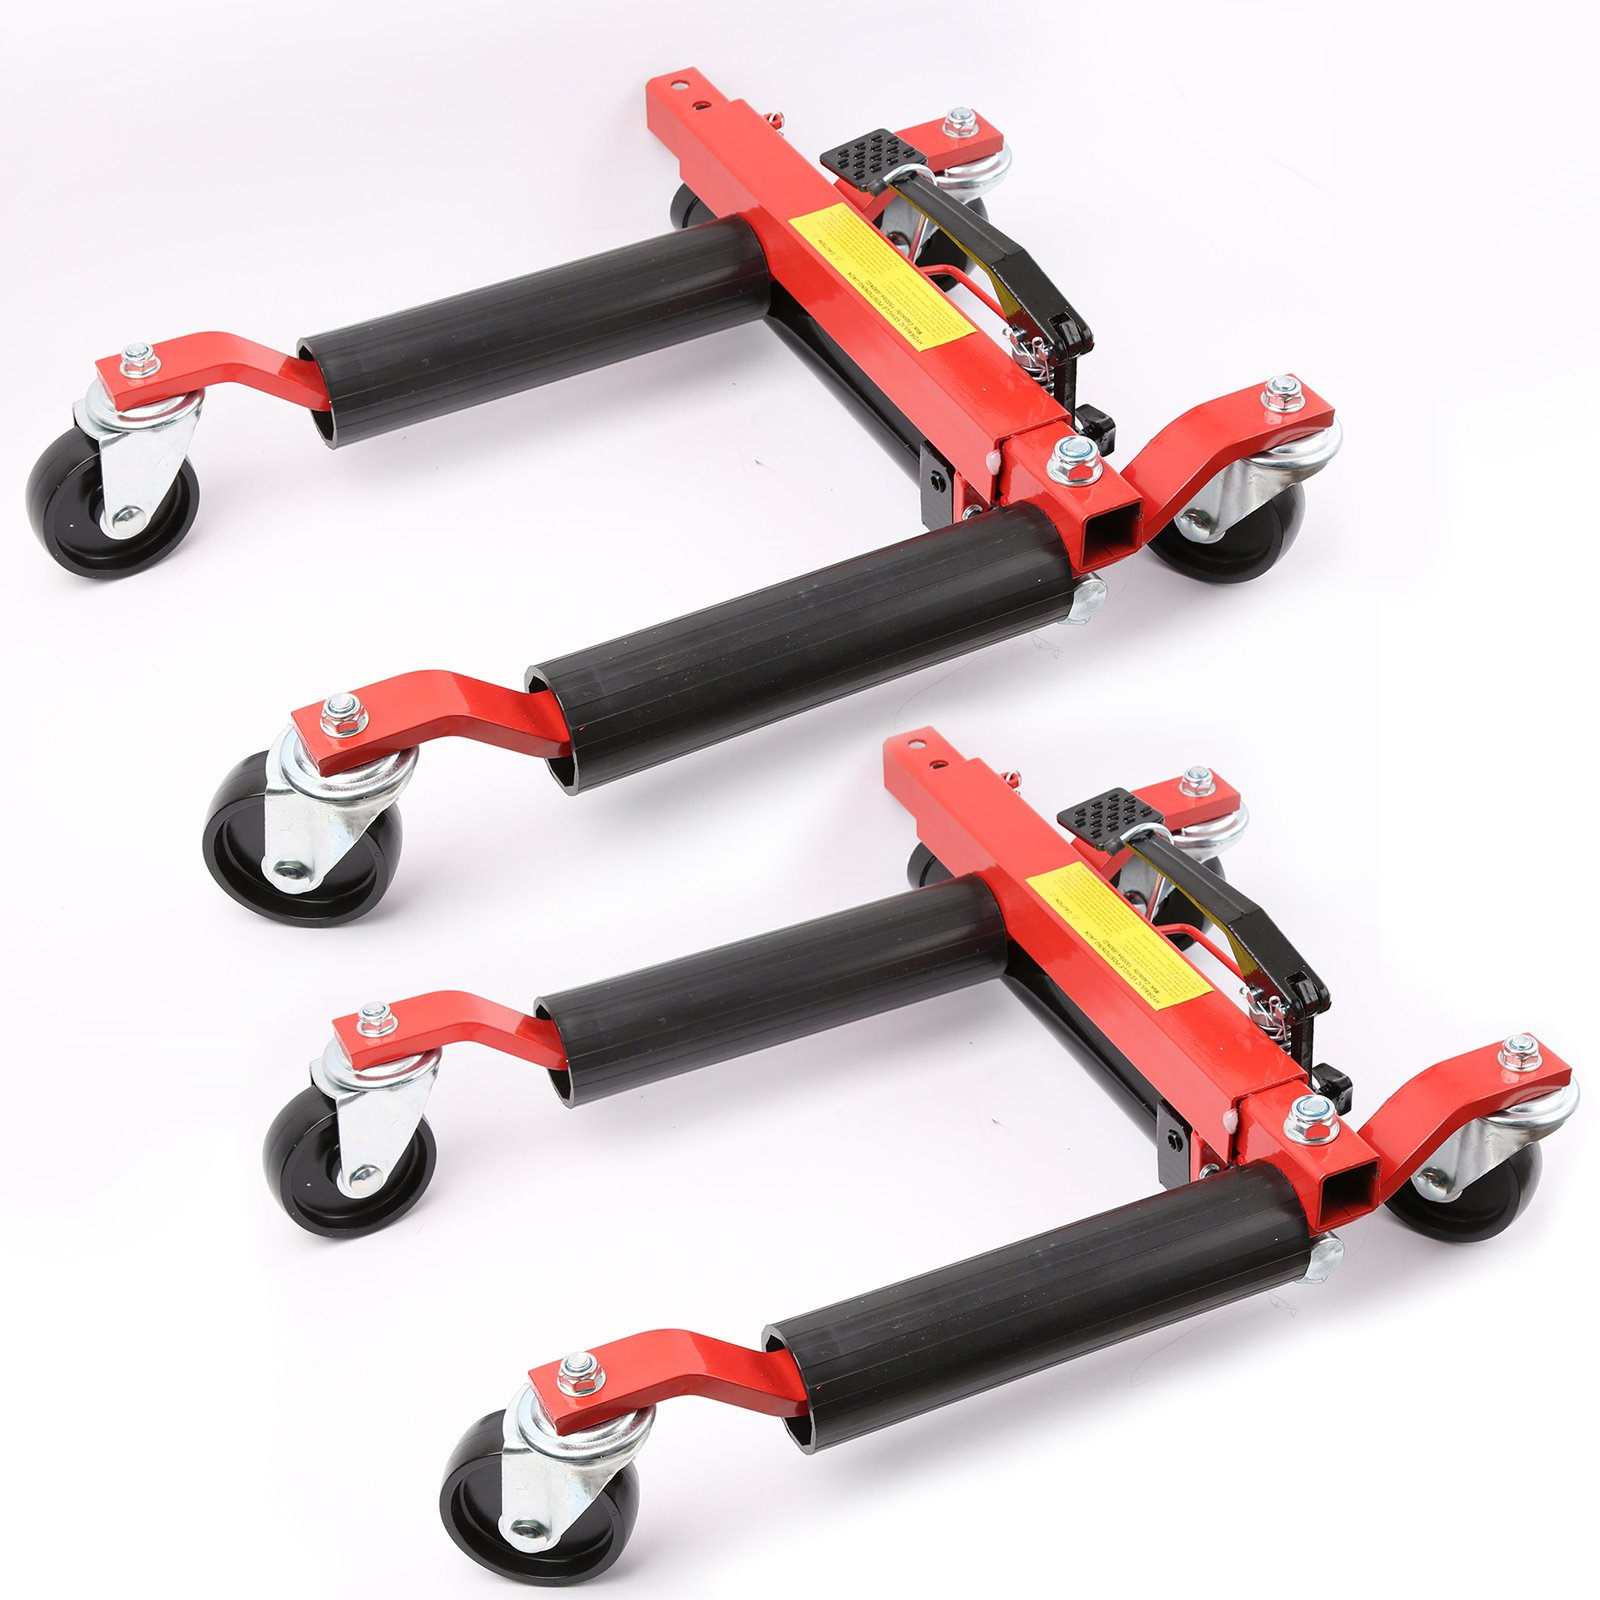 Lots of 2 1500lb Hydraulic Vehicle Positioning Jack Wheel Dolly Lift Mover Vehicle Car SUV